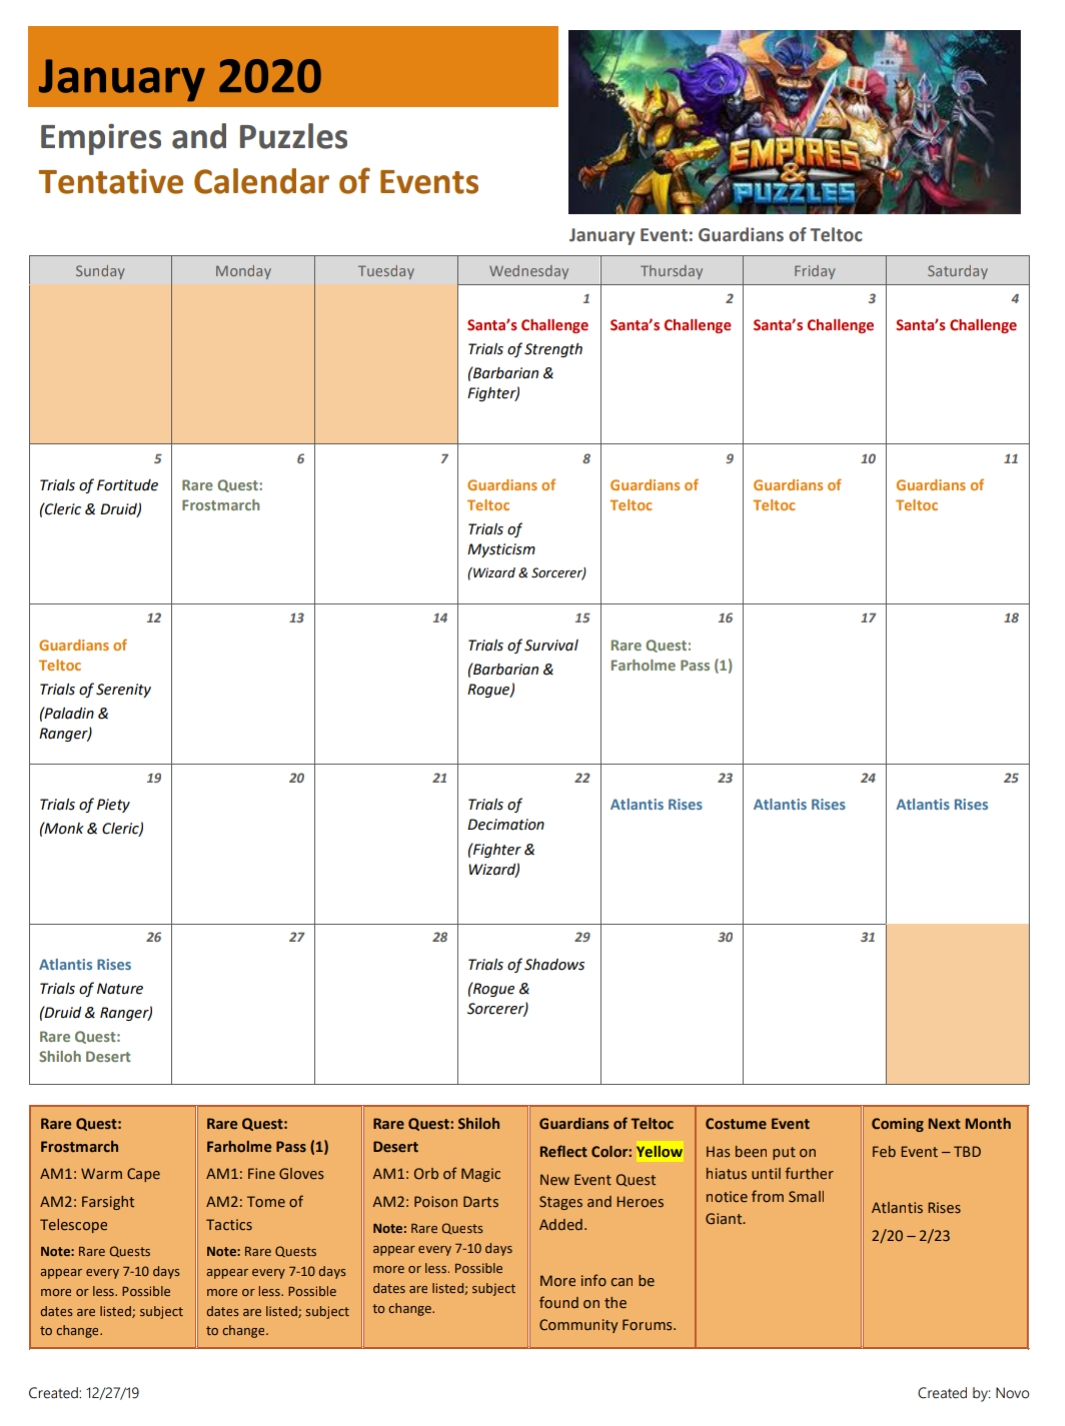 Empires And Puzzles Events 2020 | Calendar For Planning December Calendar 2021 Empire And Puzzles